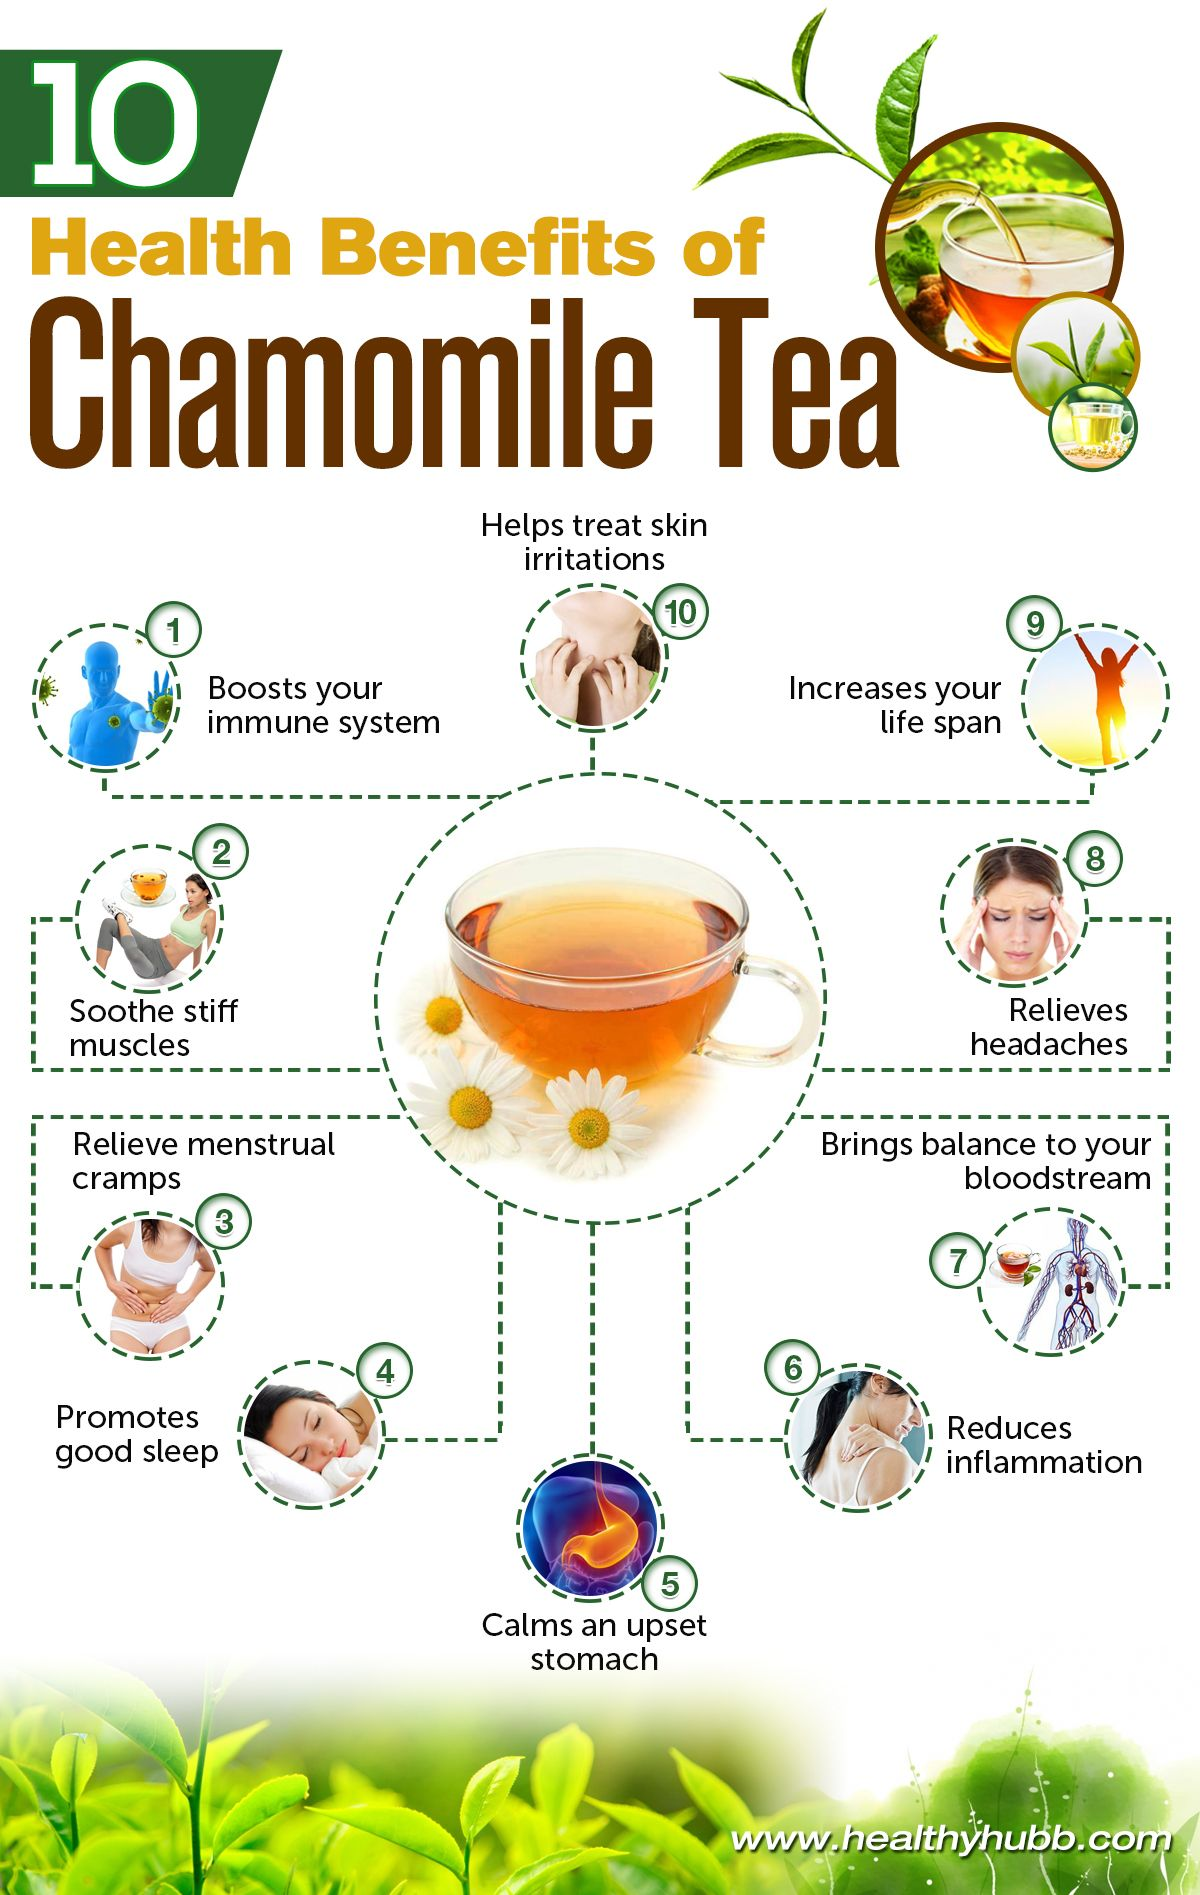 10 Health Benefits Of Drinking Chamomile Tea Healthy Food Nutrition I Grew Up On Chamomile Te Chamomile Tea Benefits Chamomile Tea Coconut Health Benefits